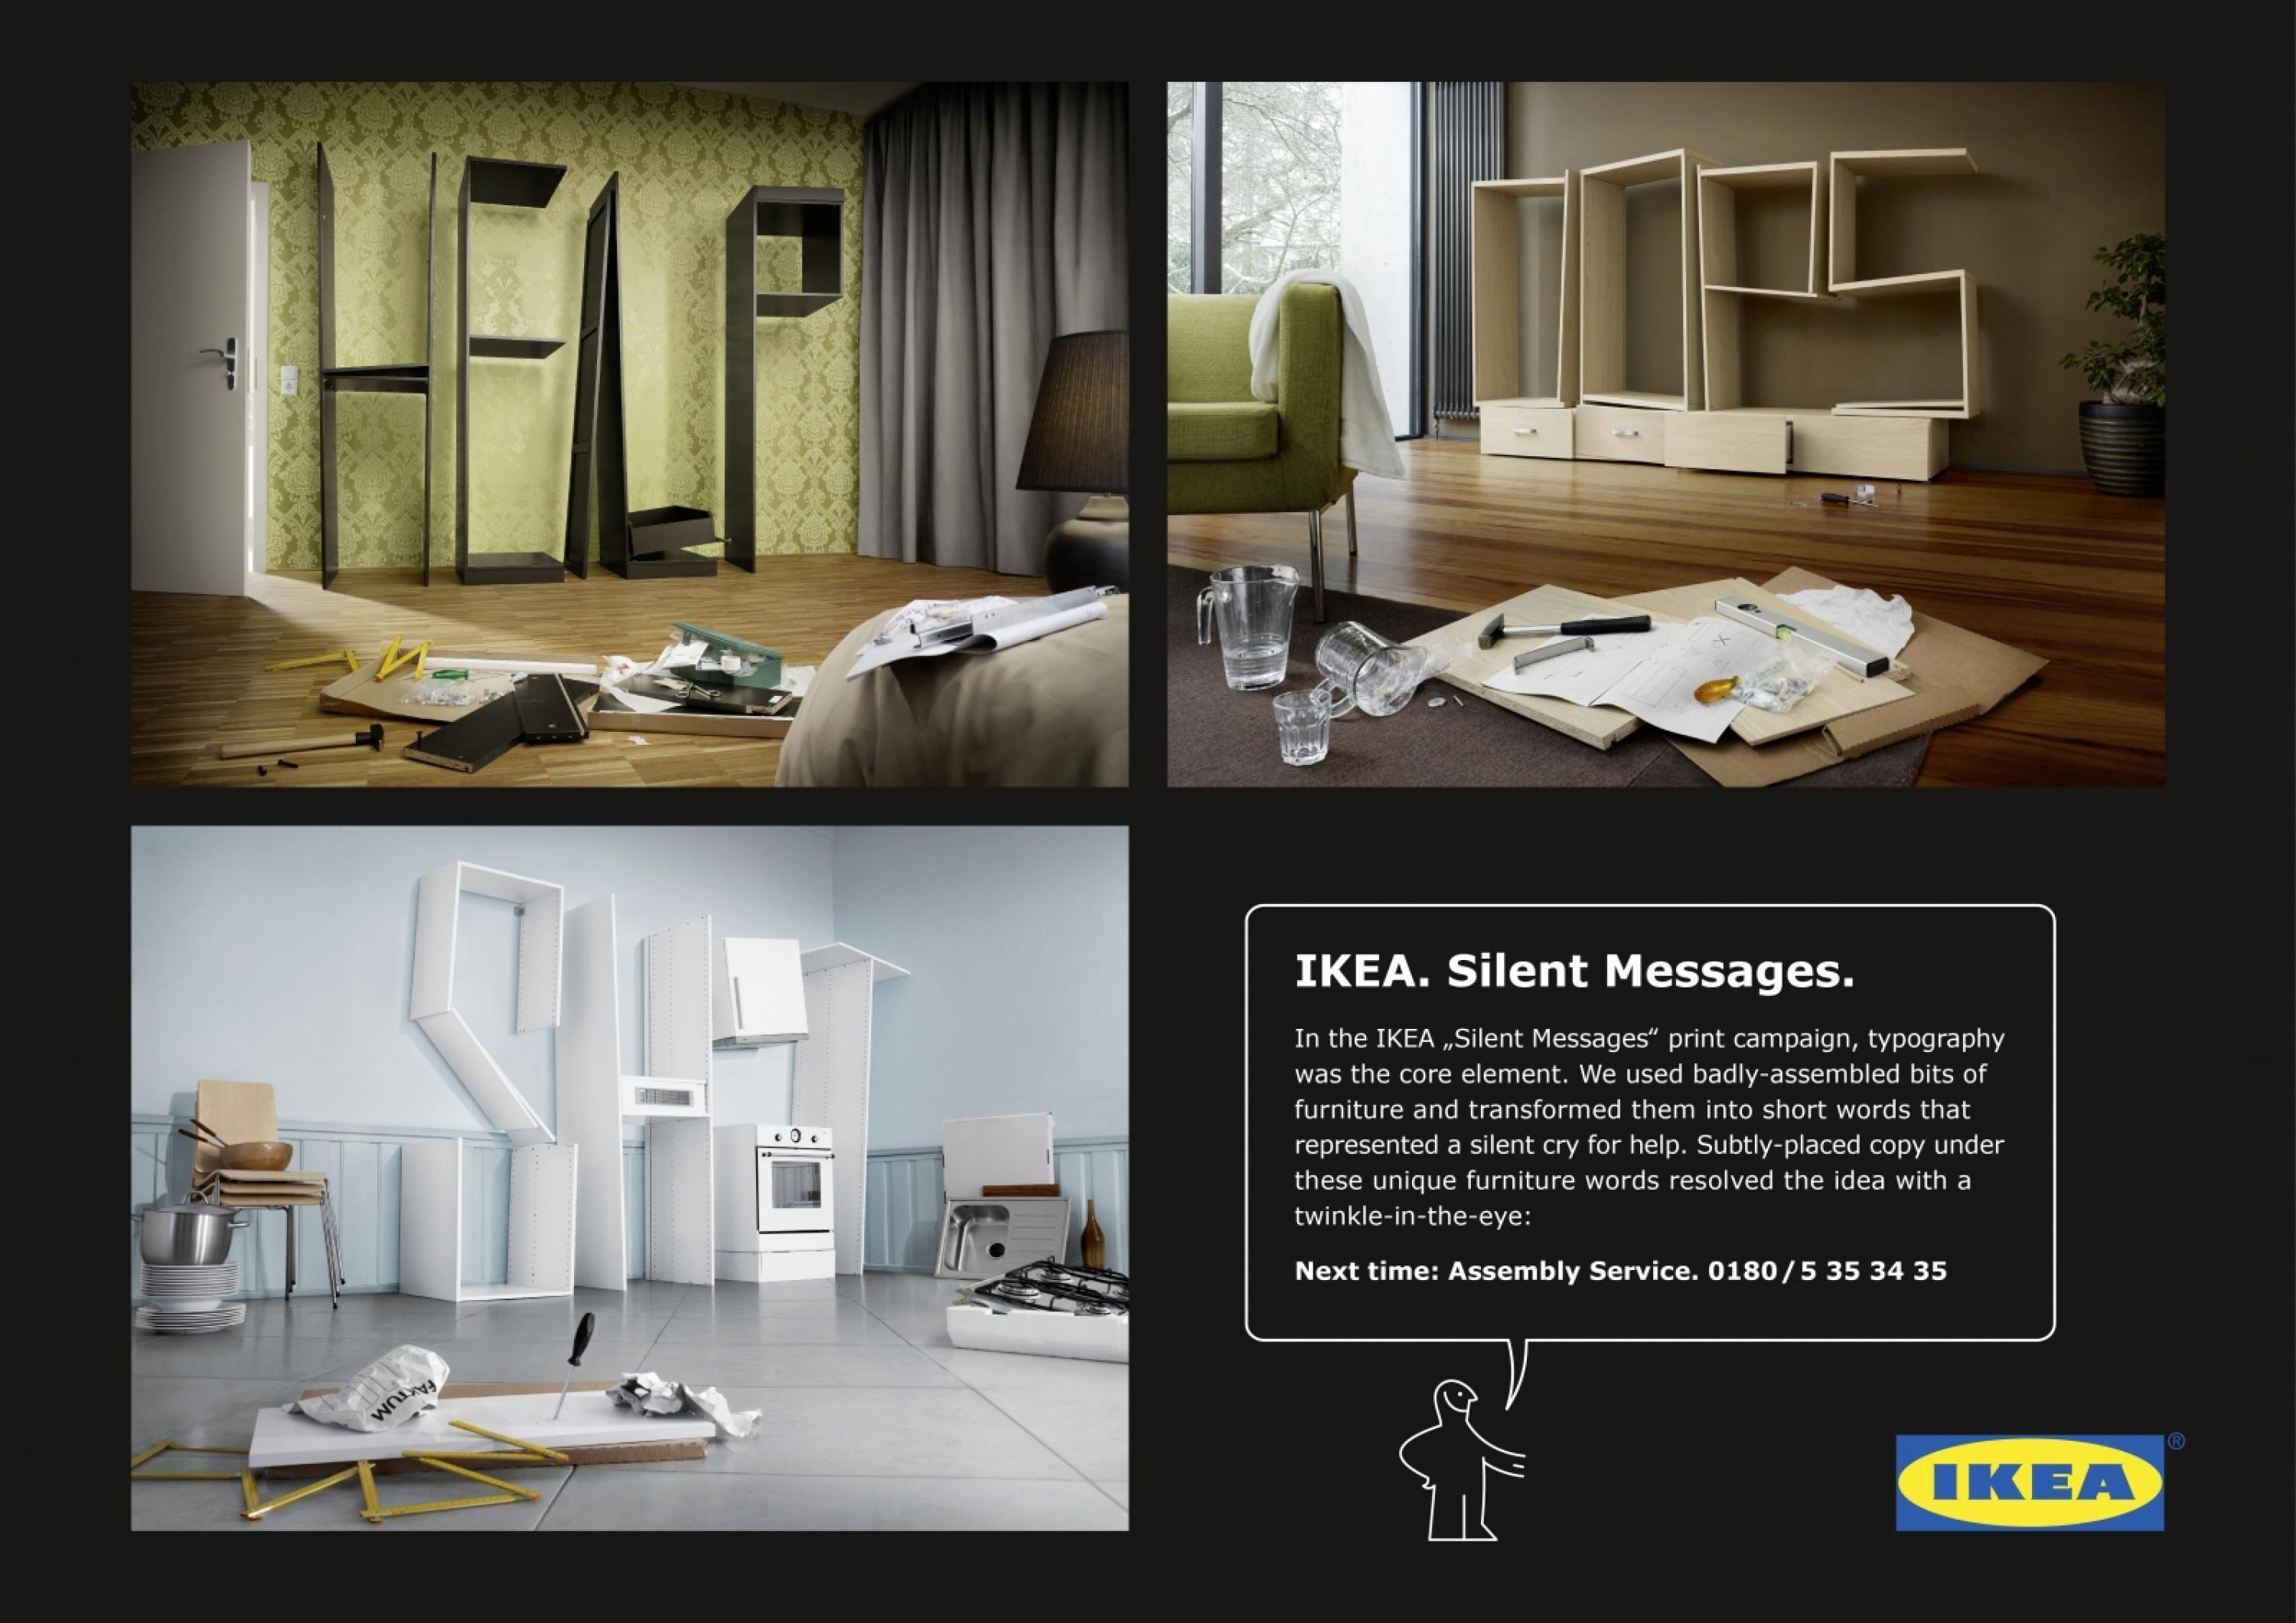 Adeevee | Only selected creativity - Ikea Assembly Service